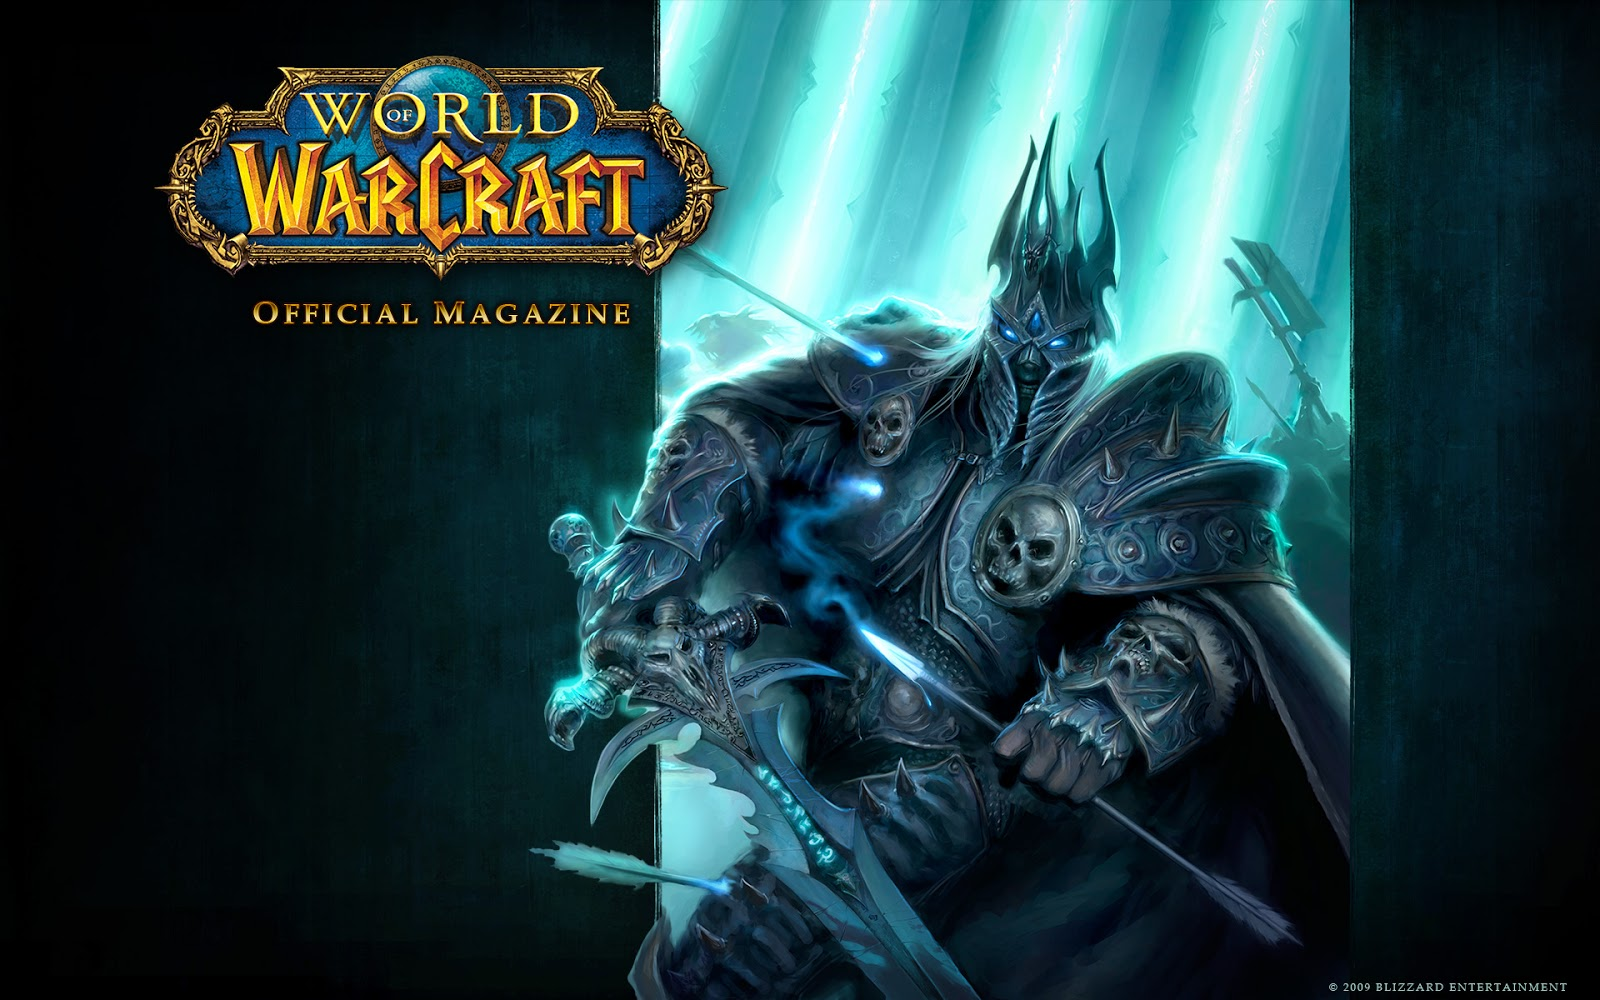 World of Warcraft Wallpapers